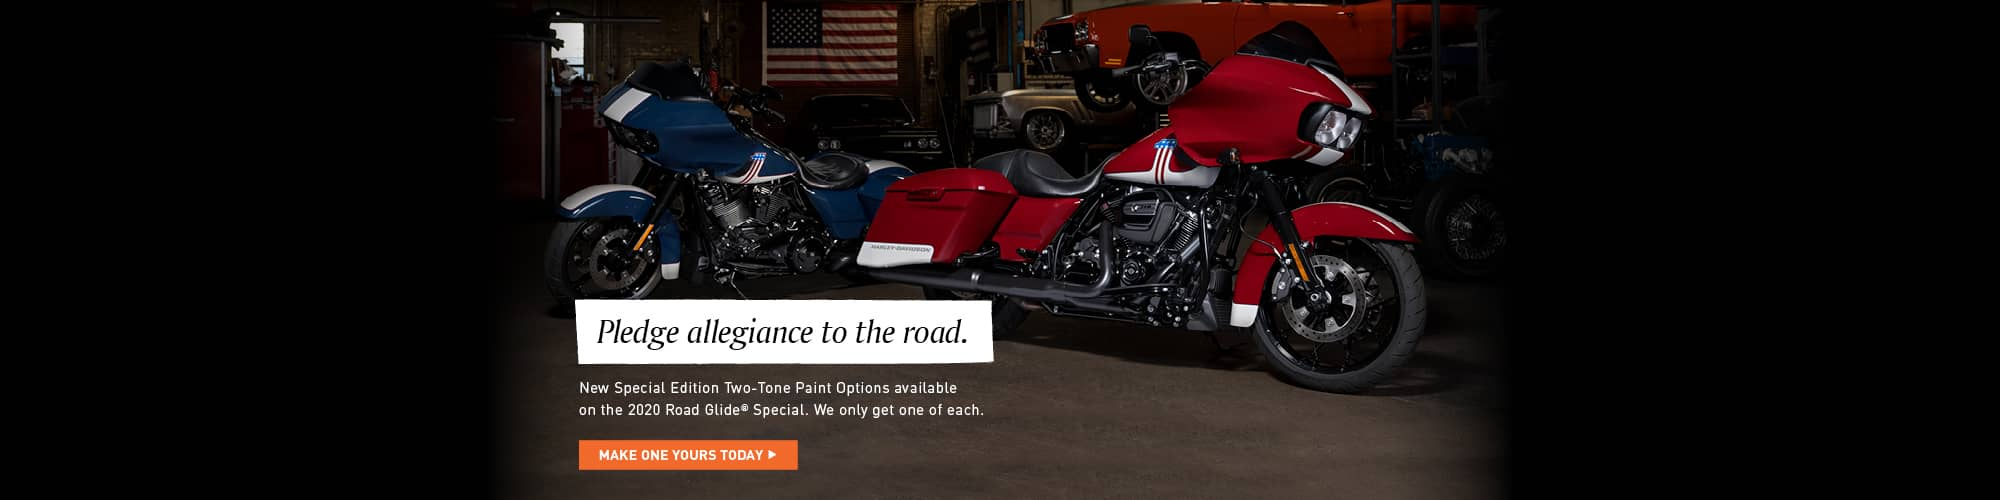 Special Edition Road Glide Two-Tone at Garden State Harley-Davidson